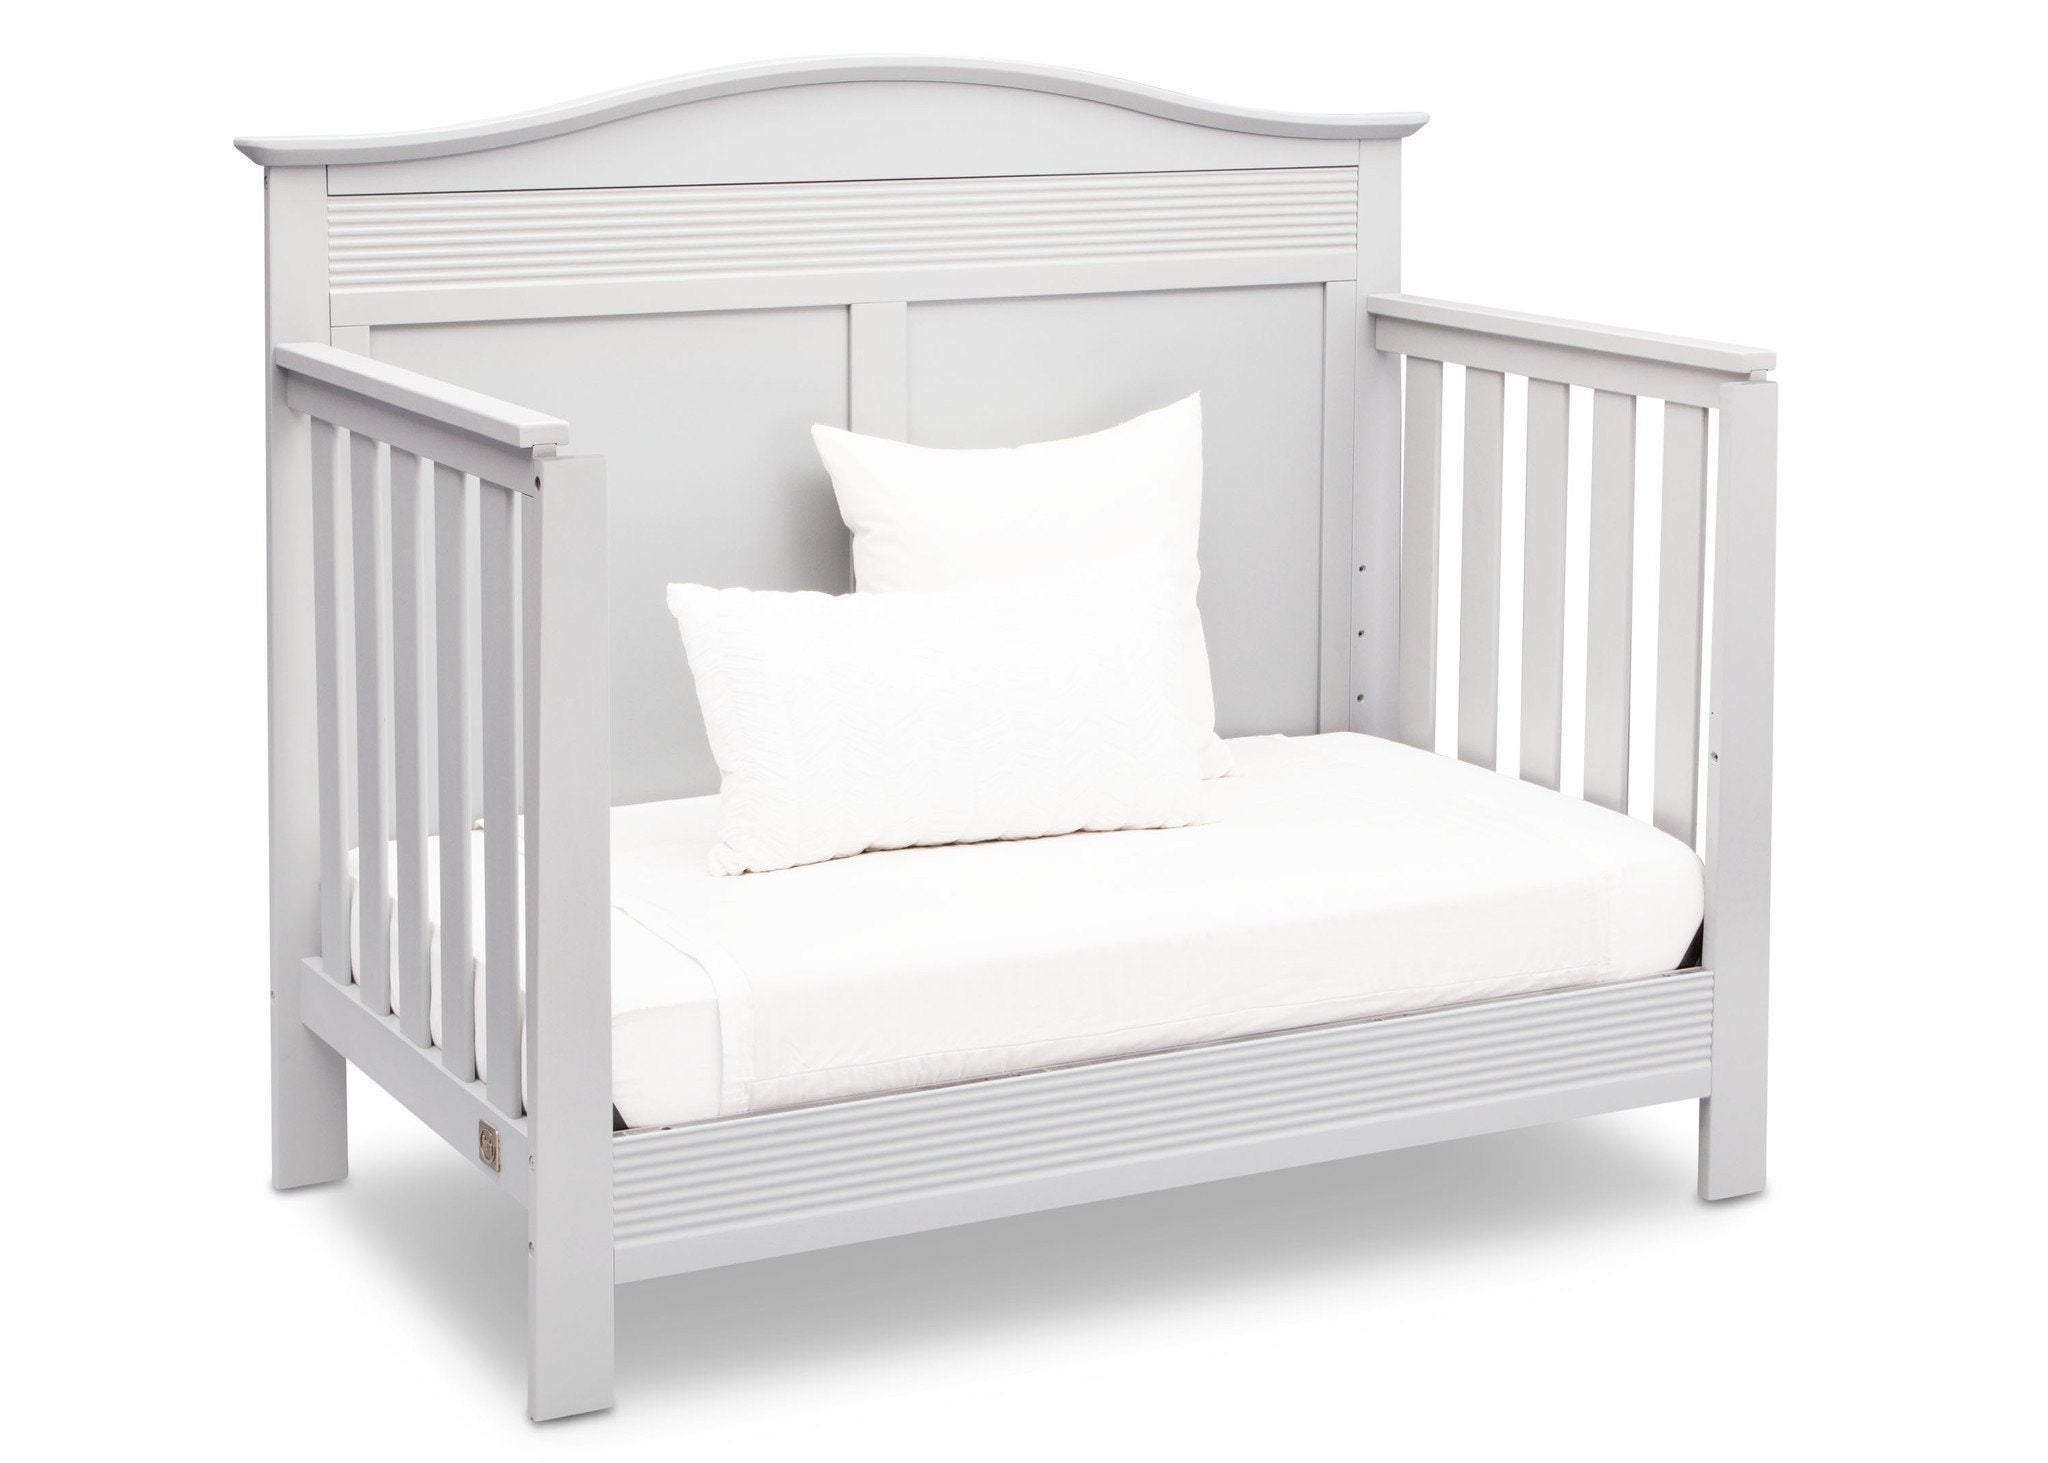 Serta Bianca White (130) Barrett 4-in-1 Convertible Crib, Right Daybed View b4b